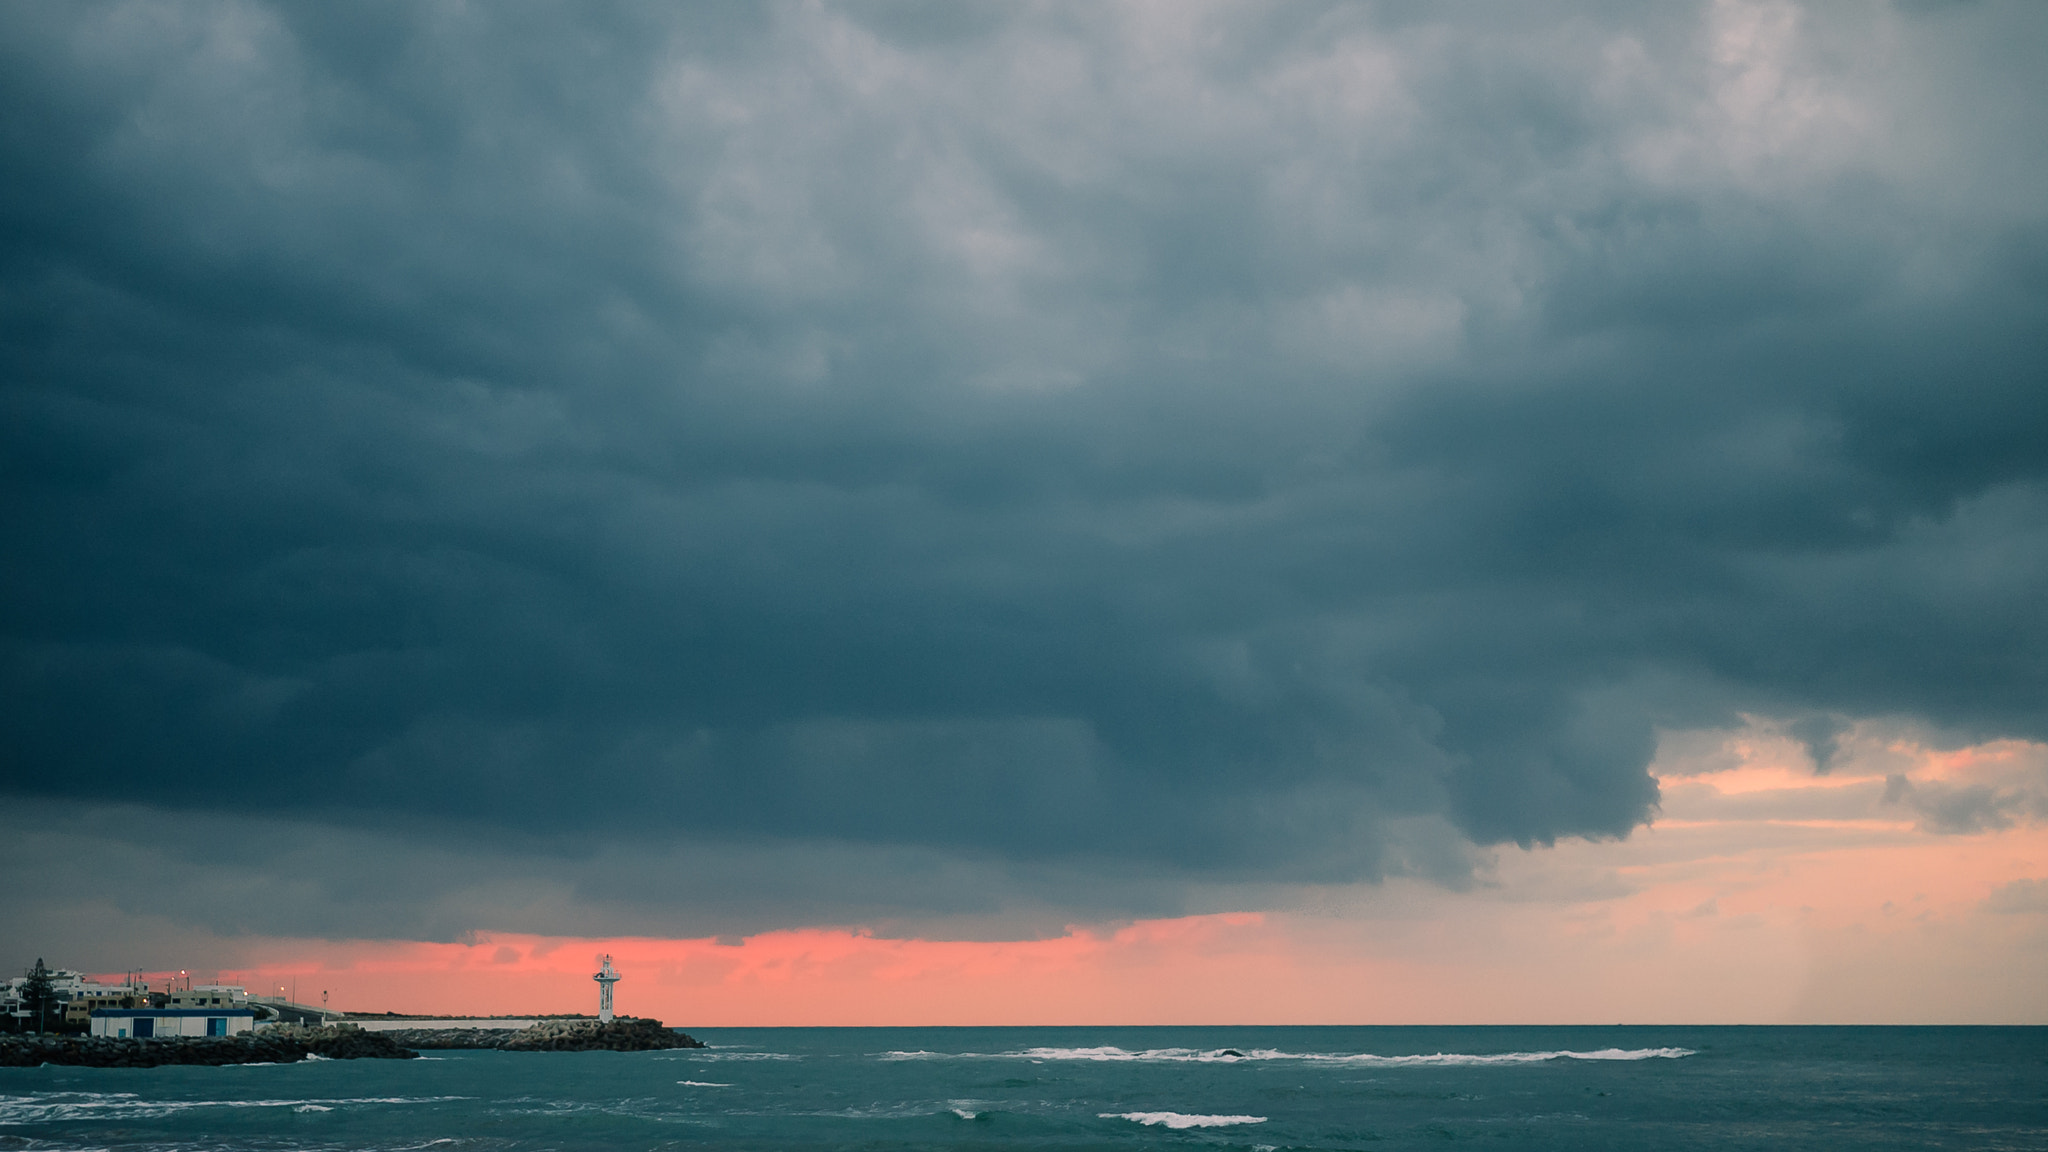 Photograph Before the Rain - 2 by Amine Fassi on 500px